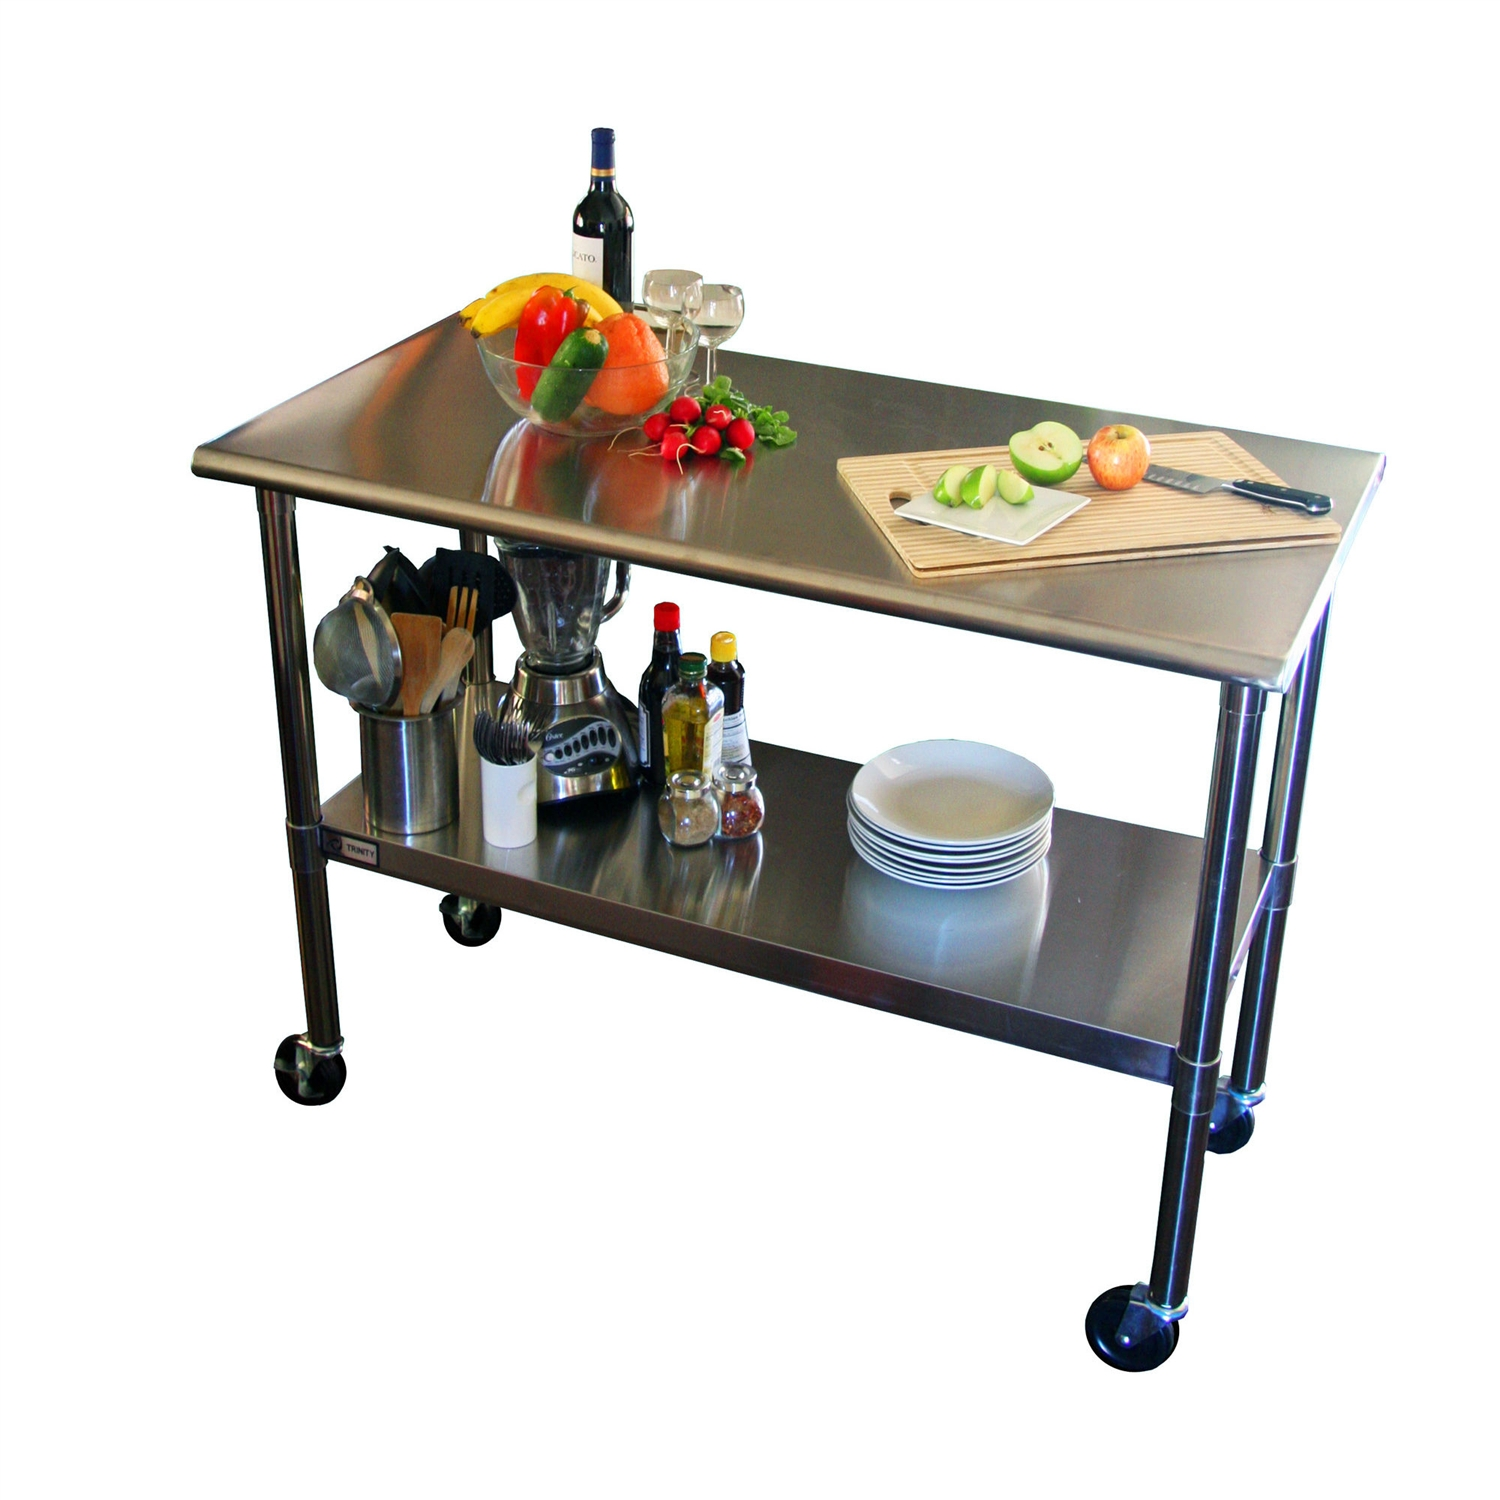 Genial 2ft X 4ft Stainless Steel Top Kitchen Prep Table With Locking Casters Wheels